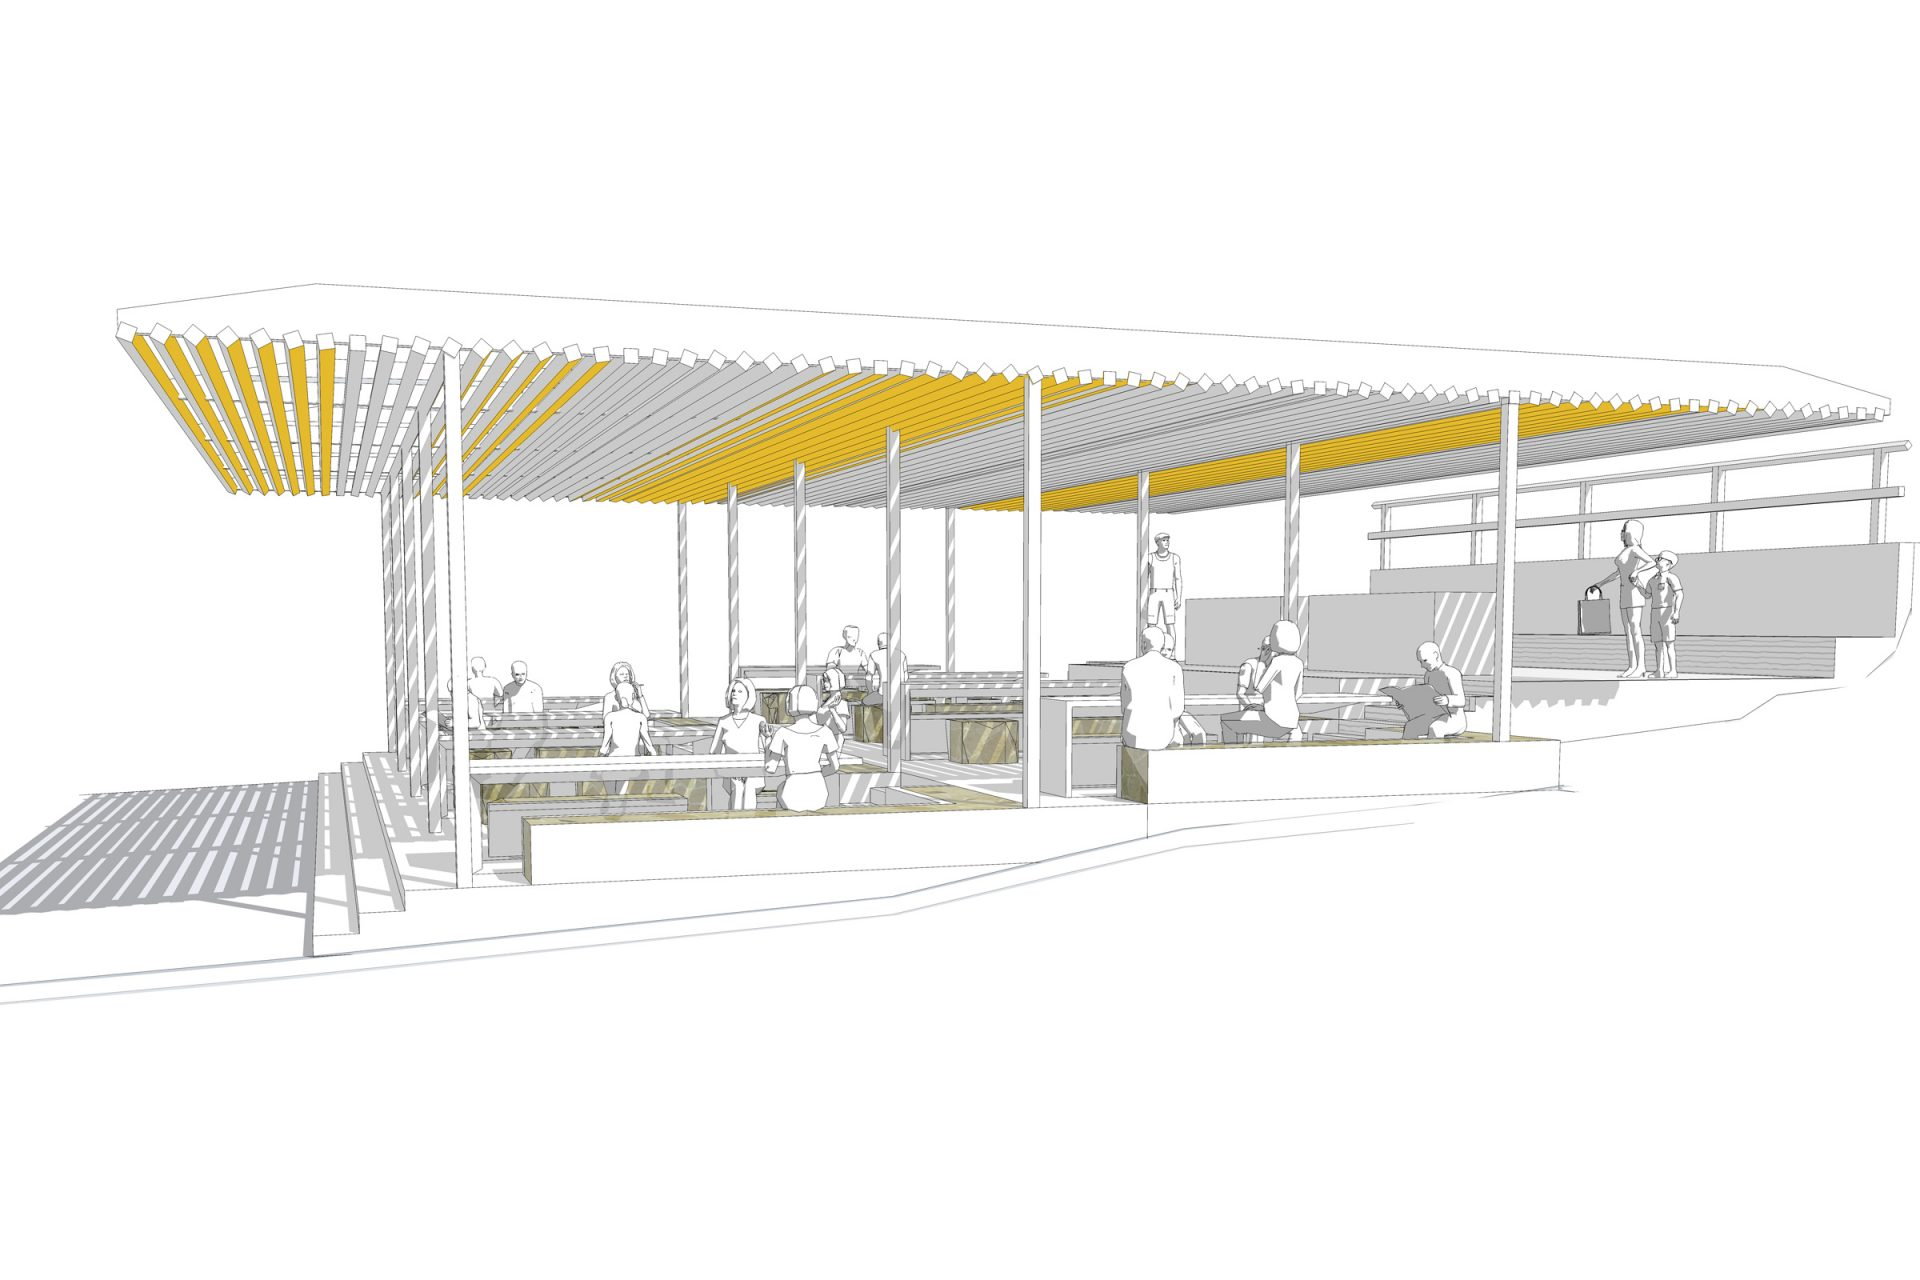 Rendering Of A Multi Table Picnic Shelter.